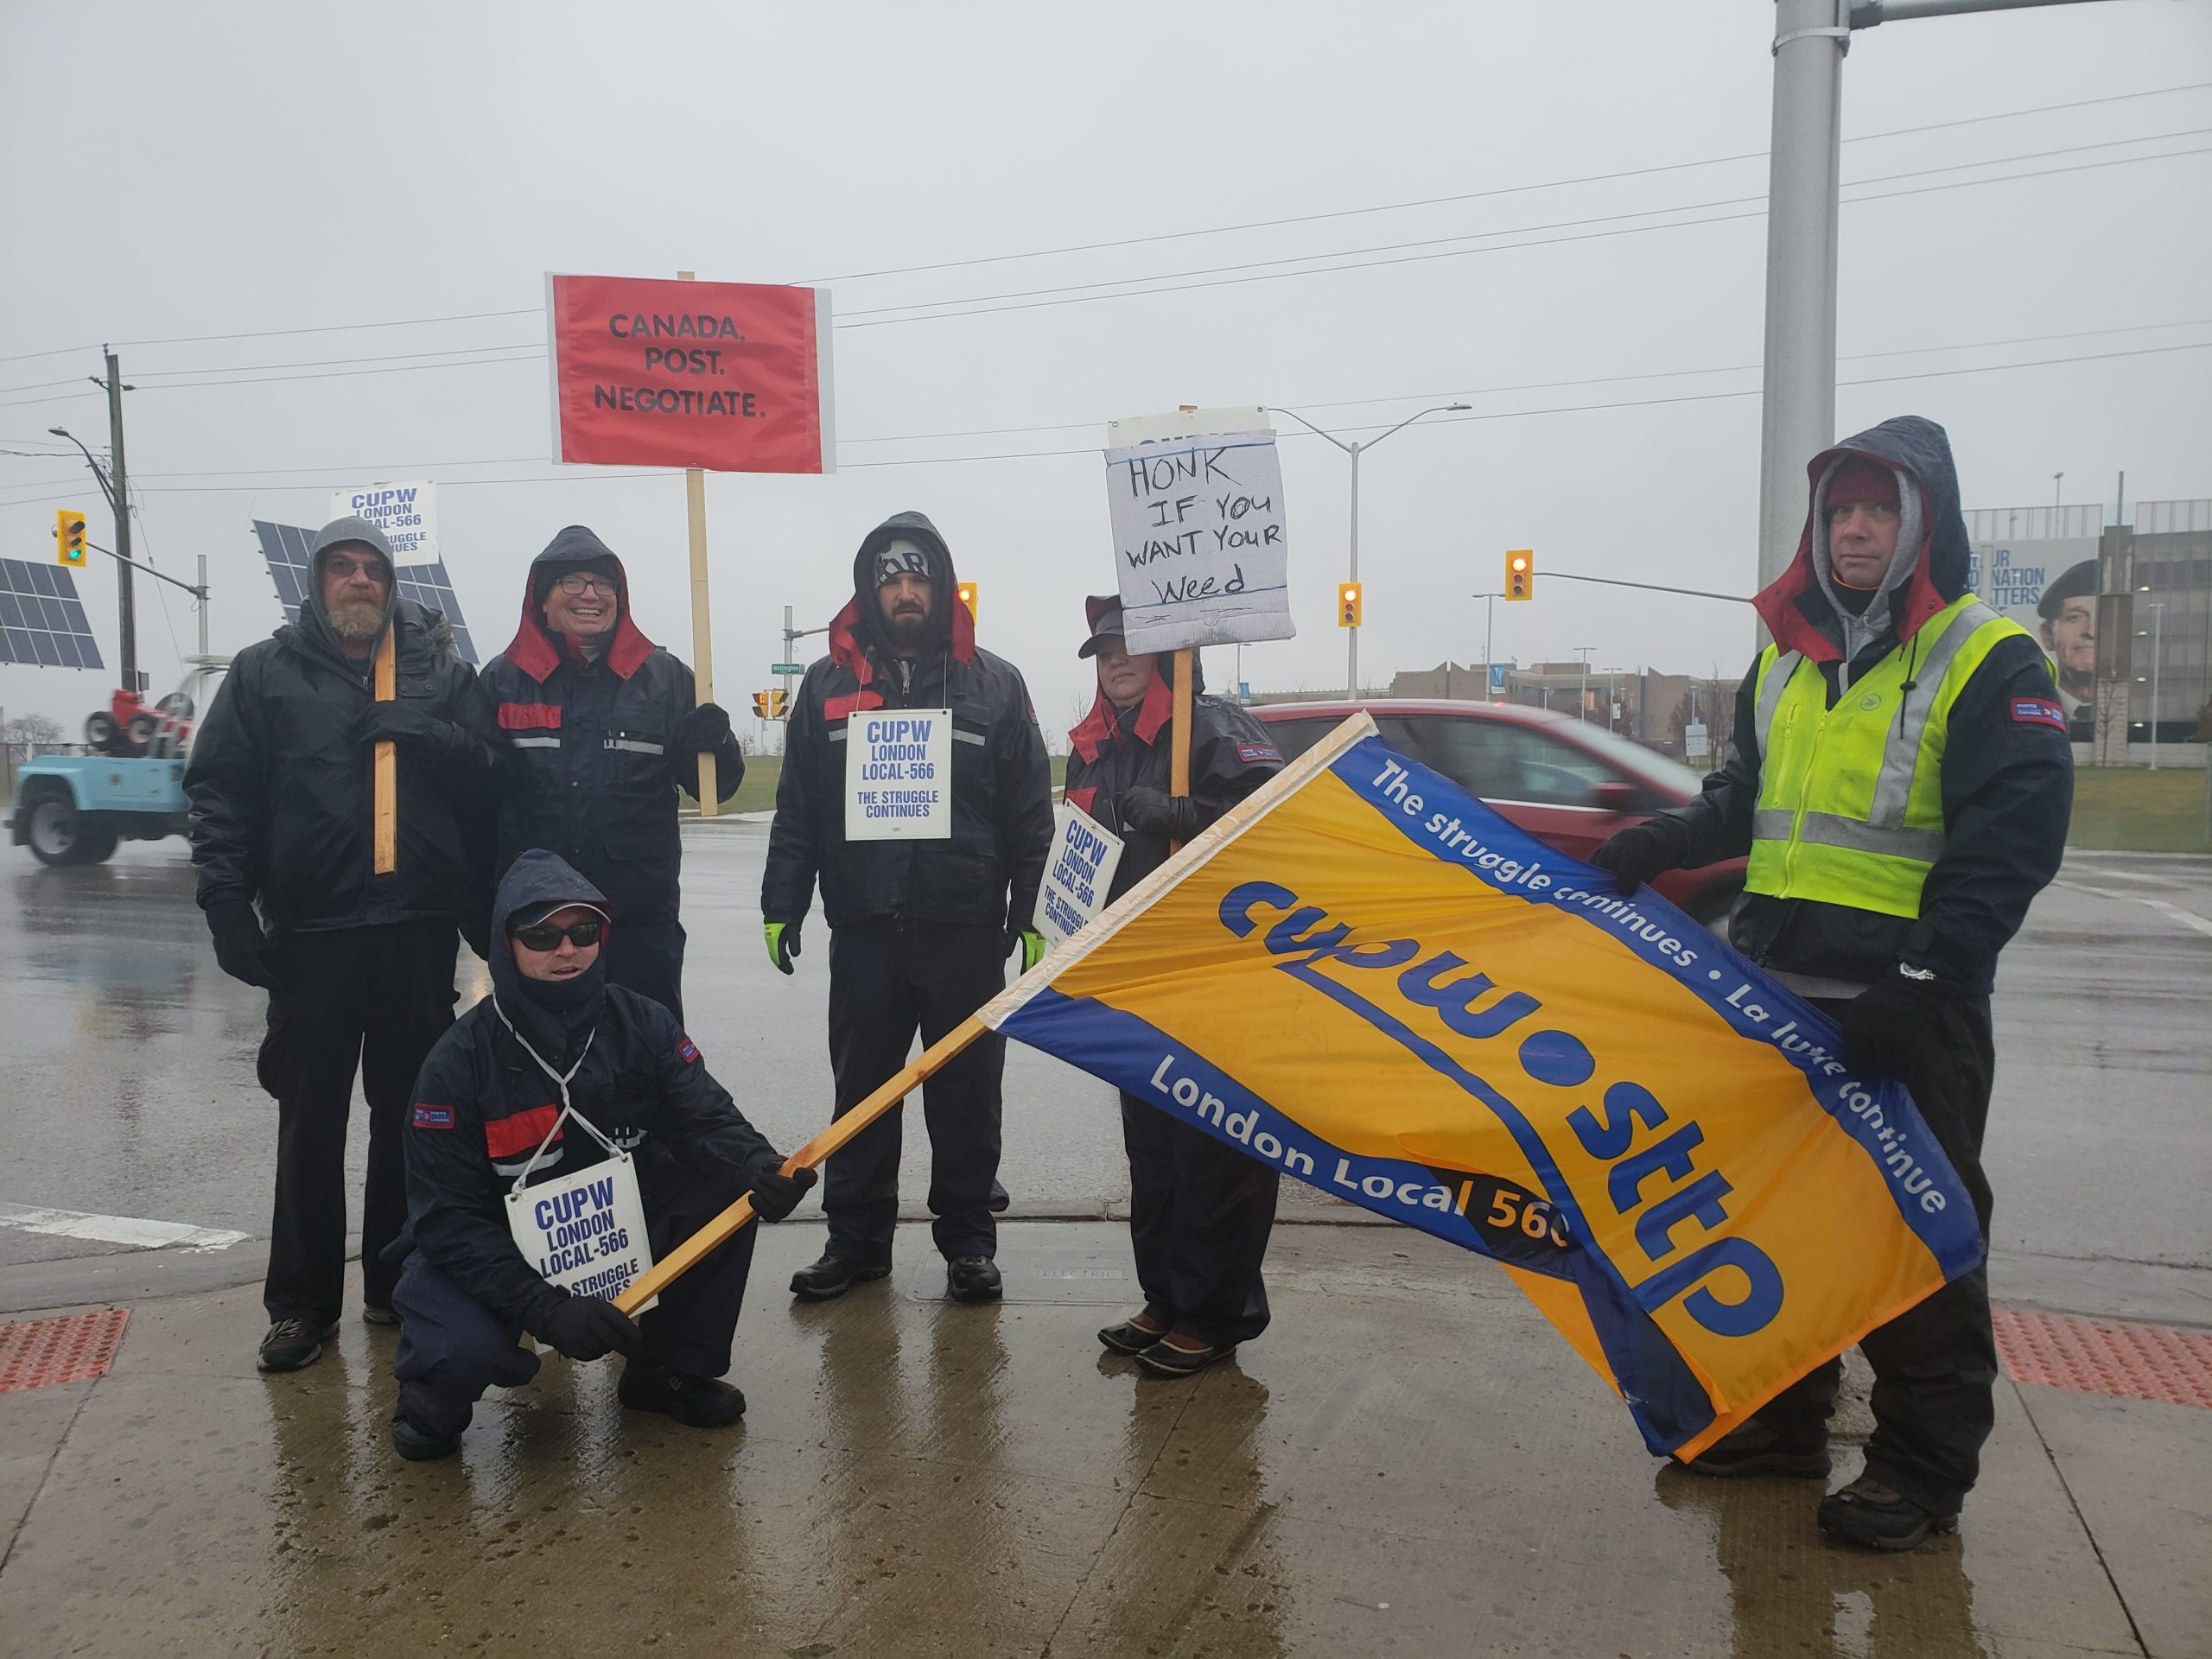 Canada Post strike over despite final push by workers